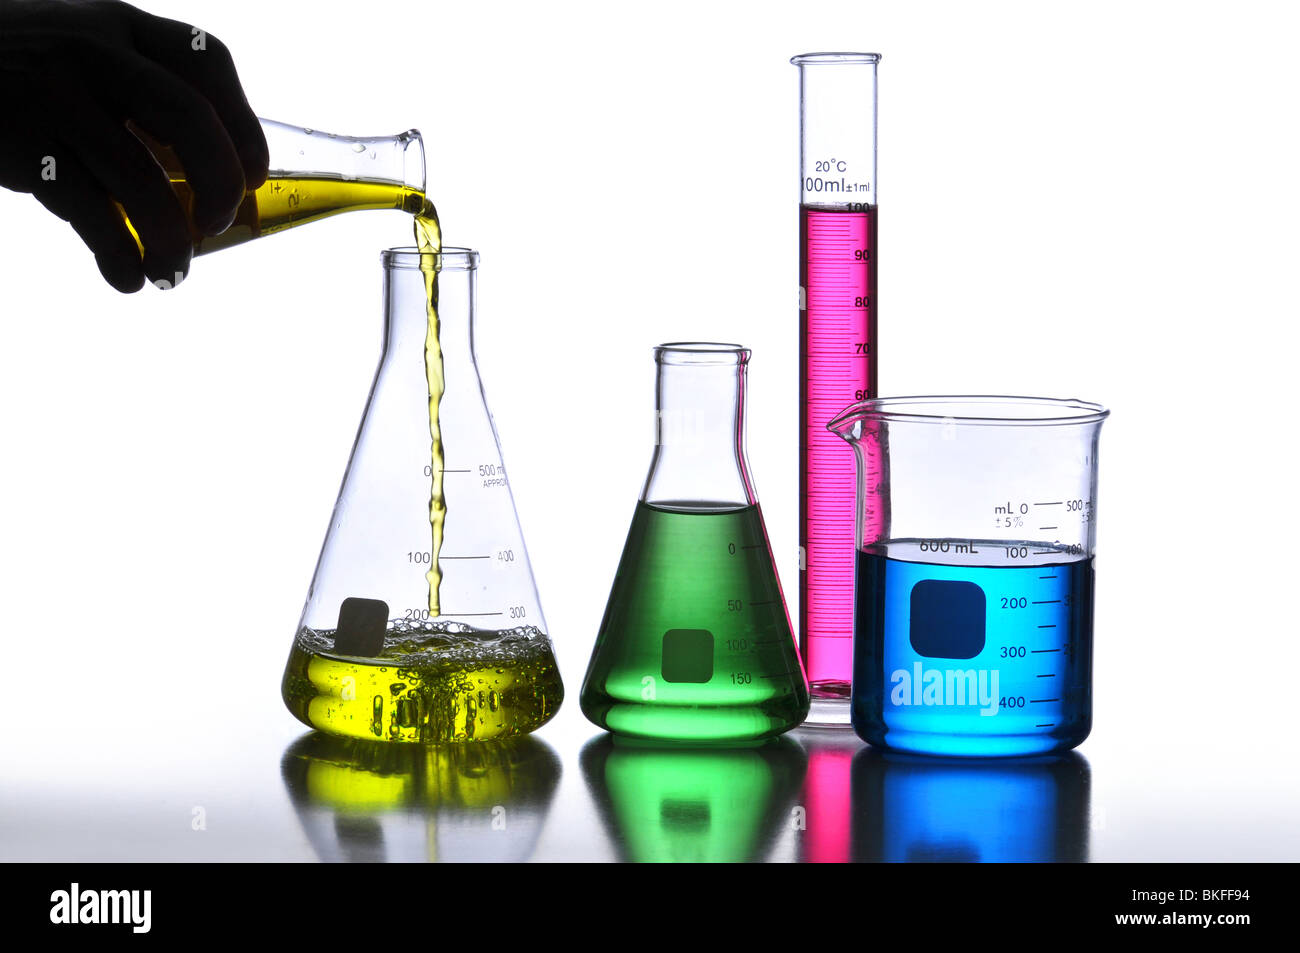 Laboratory Glassware containing different colored liquids against a neutral background - Stock Image